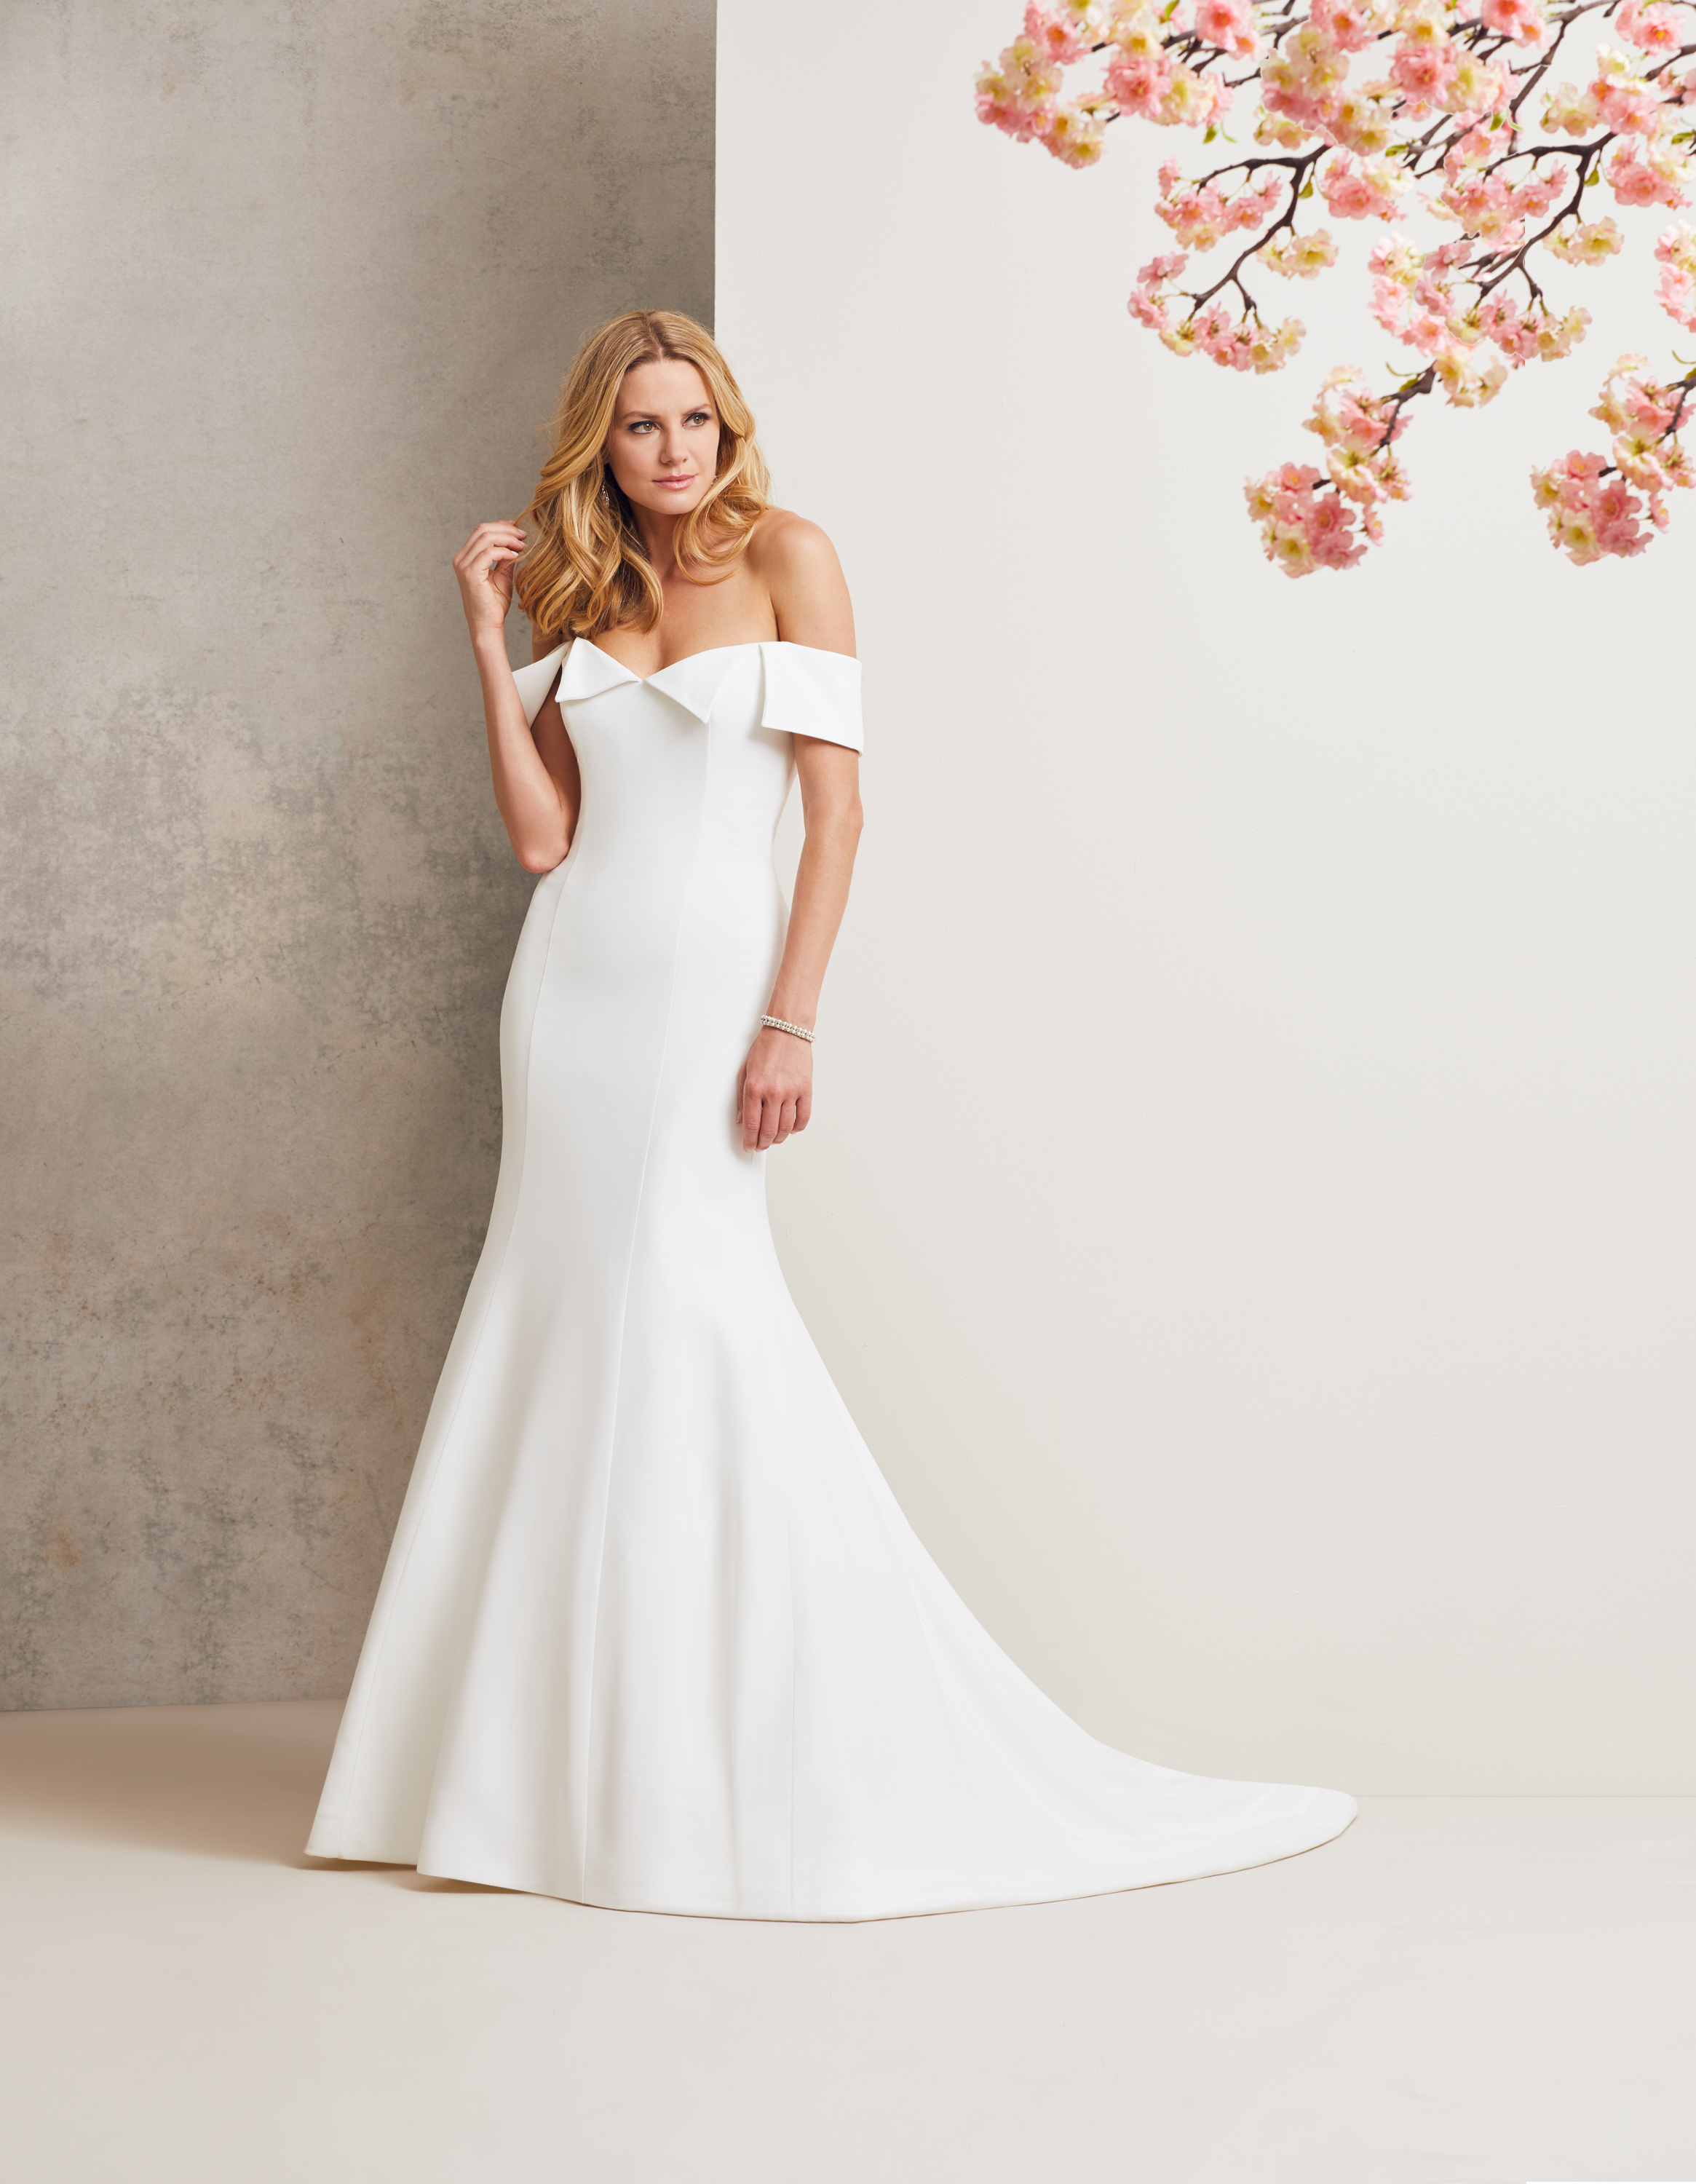 Manhattan designer wedding dress by Caroline Castigliano